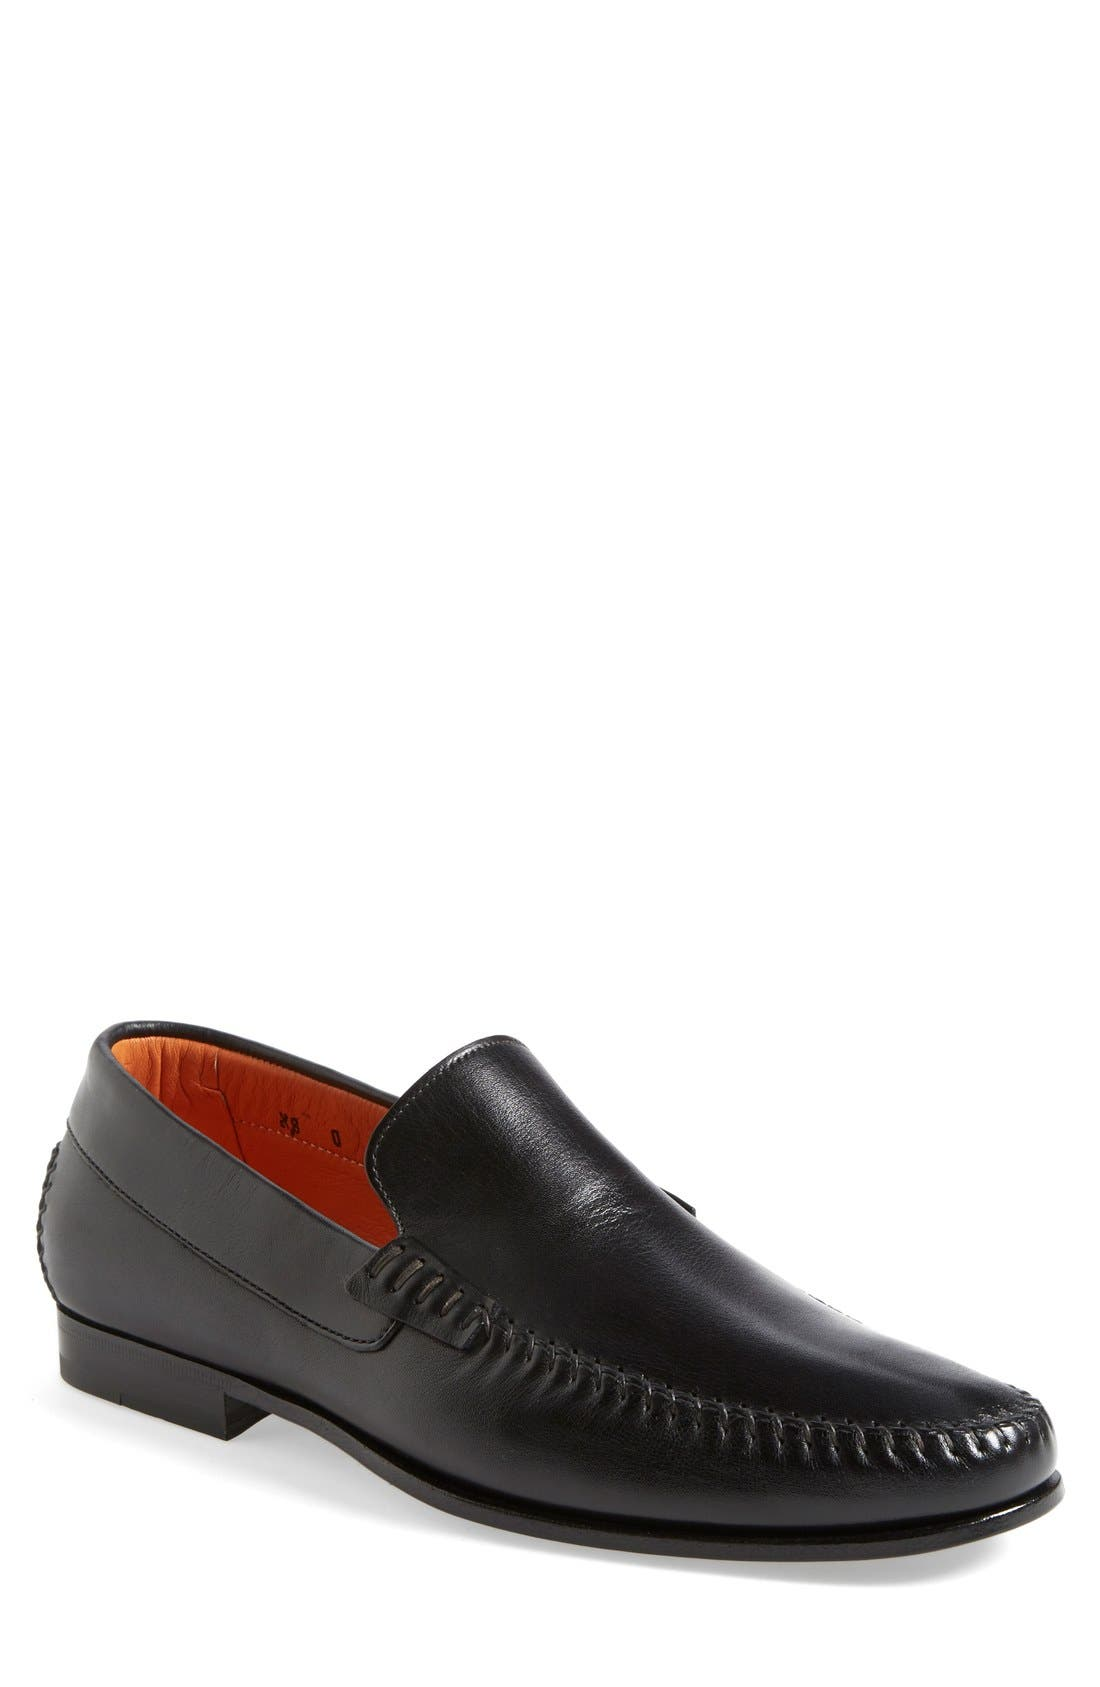 'Auburn' Venetian Loafer,                         Main,                         color,